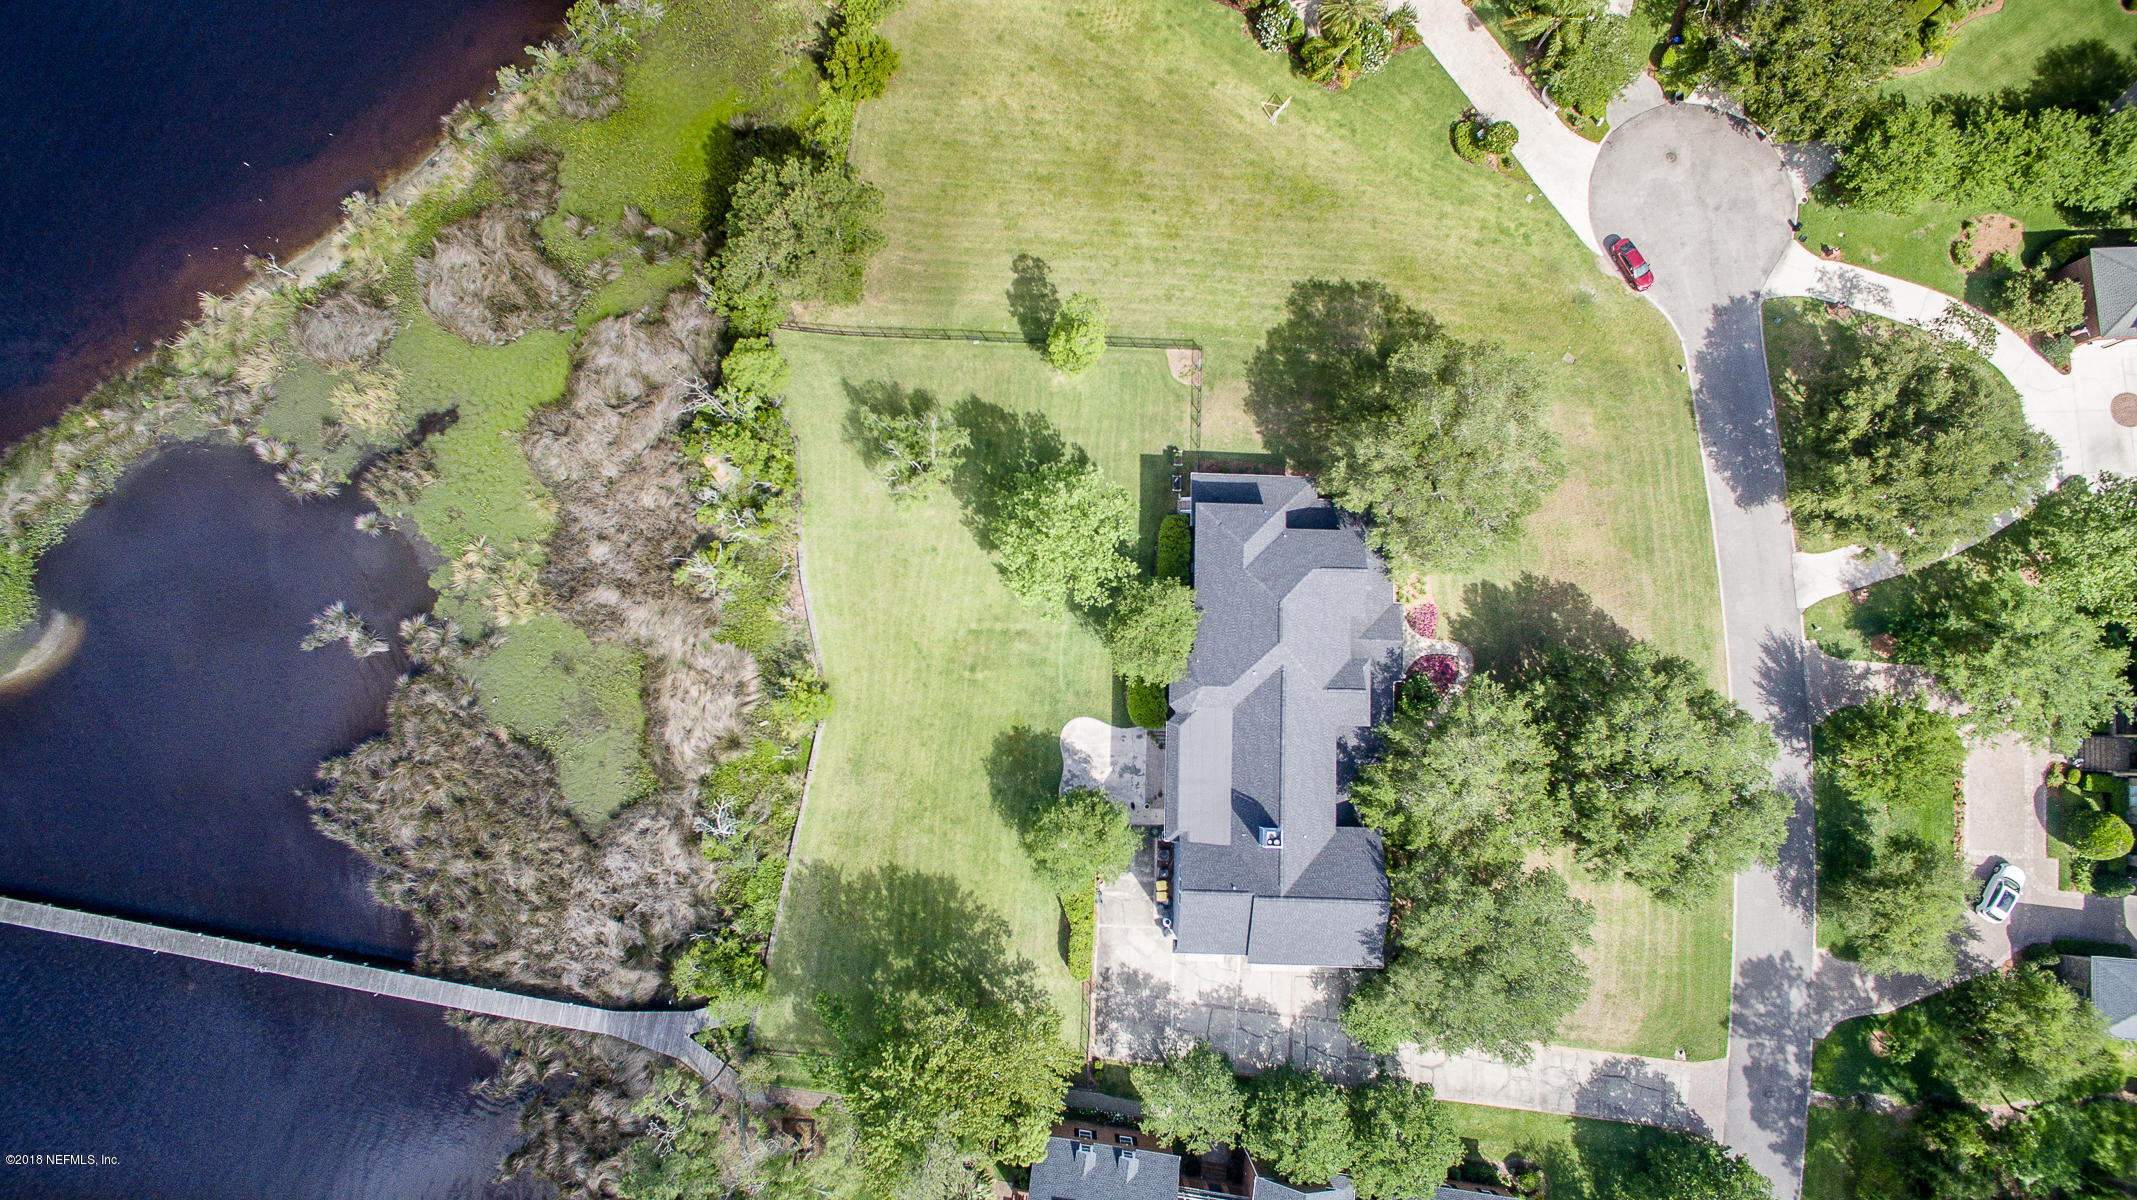 4570 ORTEGA ISLAND, JACKSONVILLE, FLORIDA 32210, 6 Bedrooms Bedrooms, ,5 BathroomsBathrooms,Residential - single family,For sale,ORTEGA ISLAND,934188